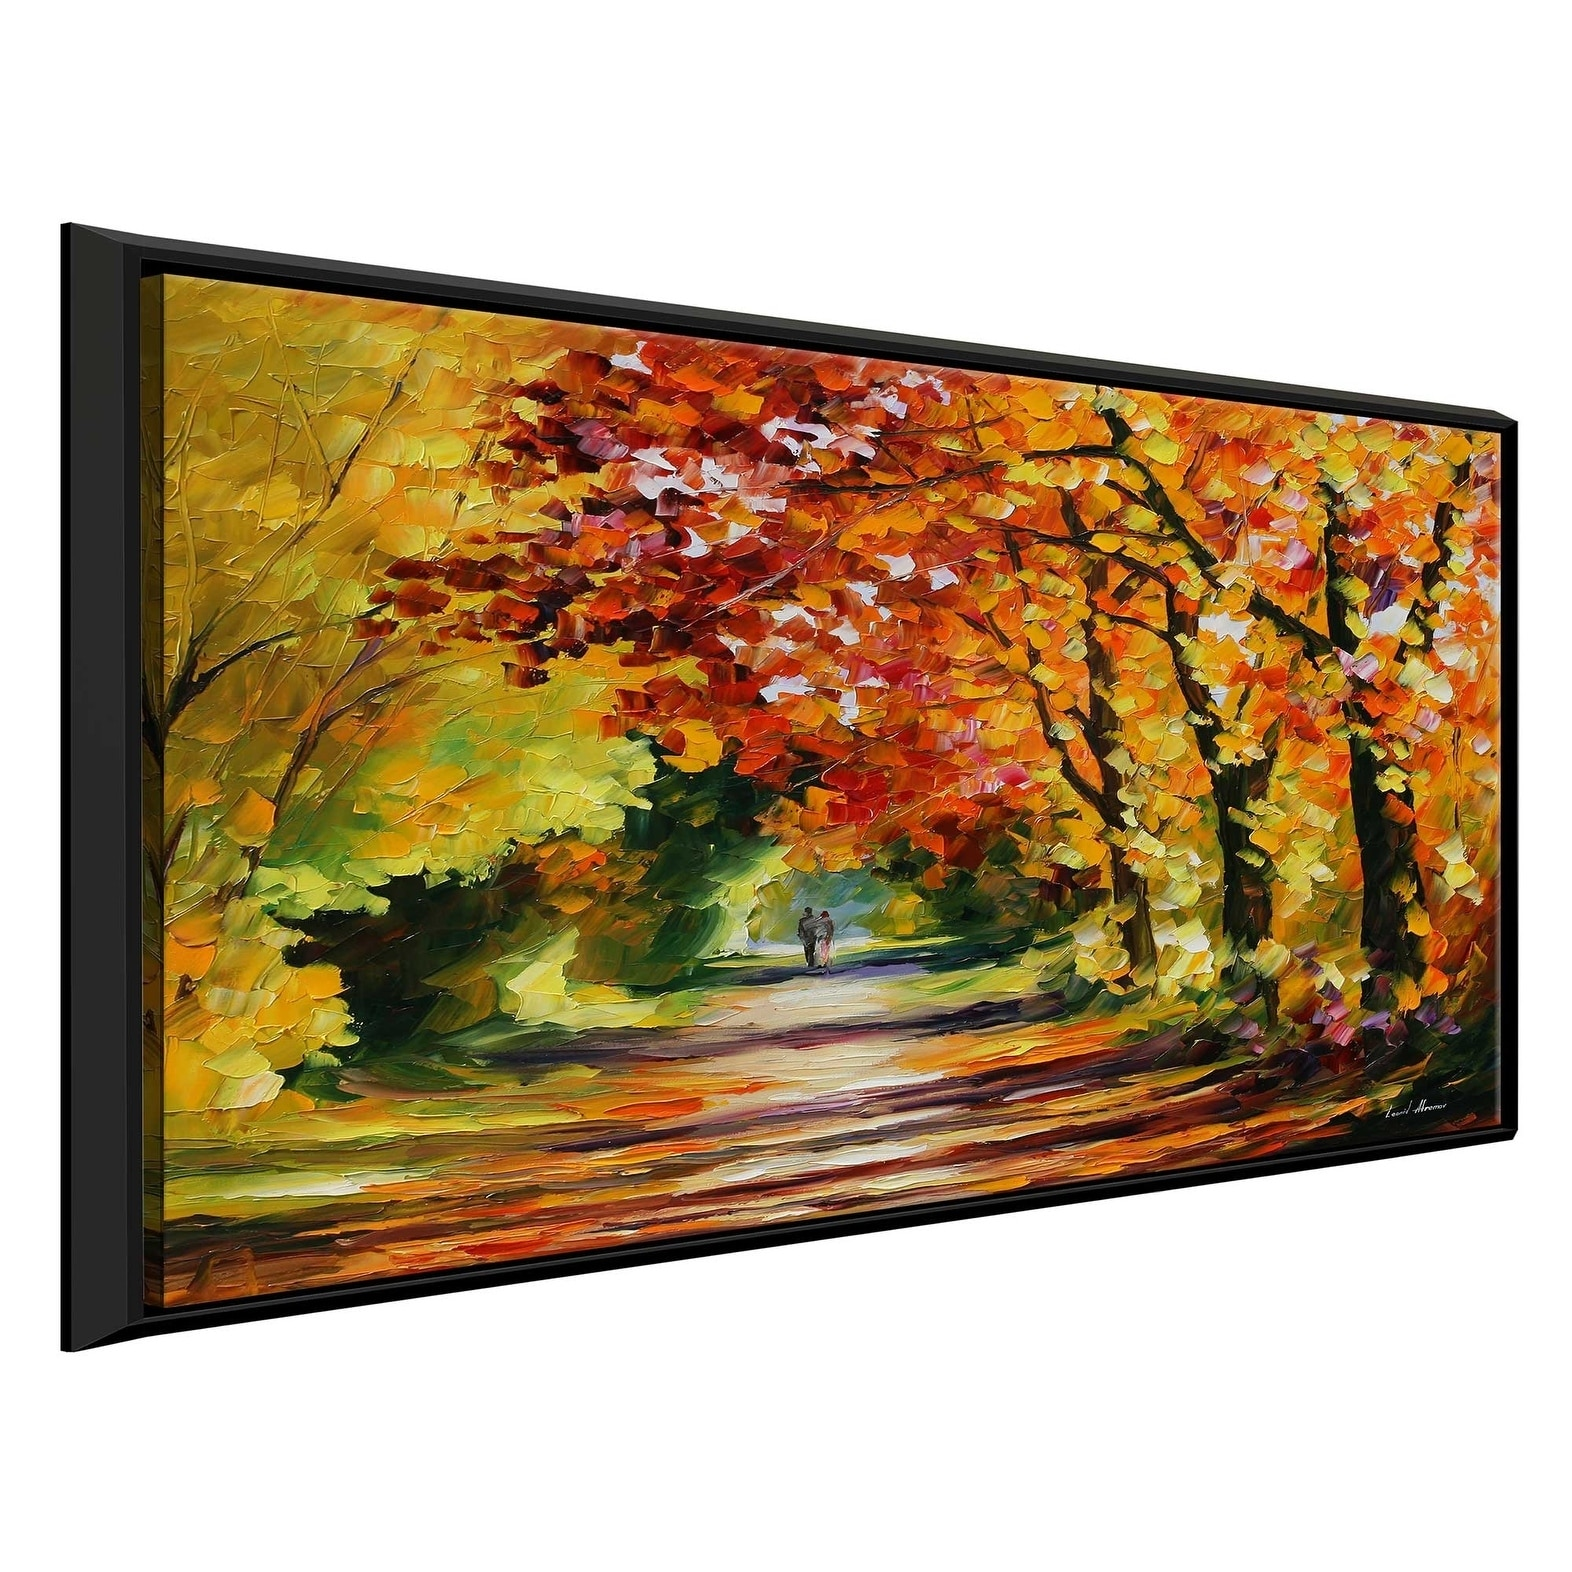 Sunny Path By Leonid Afremov Framed Oil Painting Print On Canvas Overstock 20503824